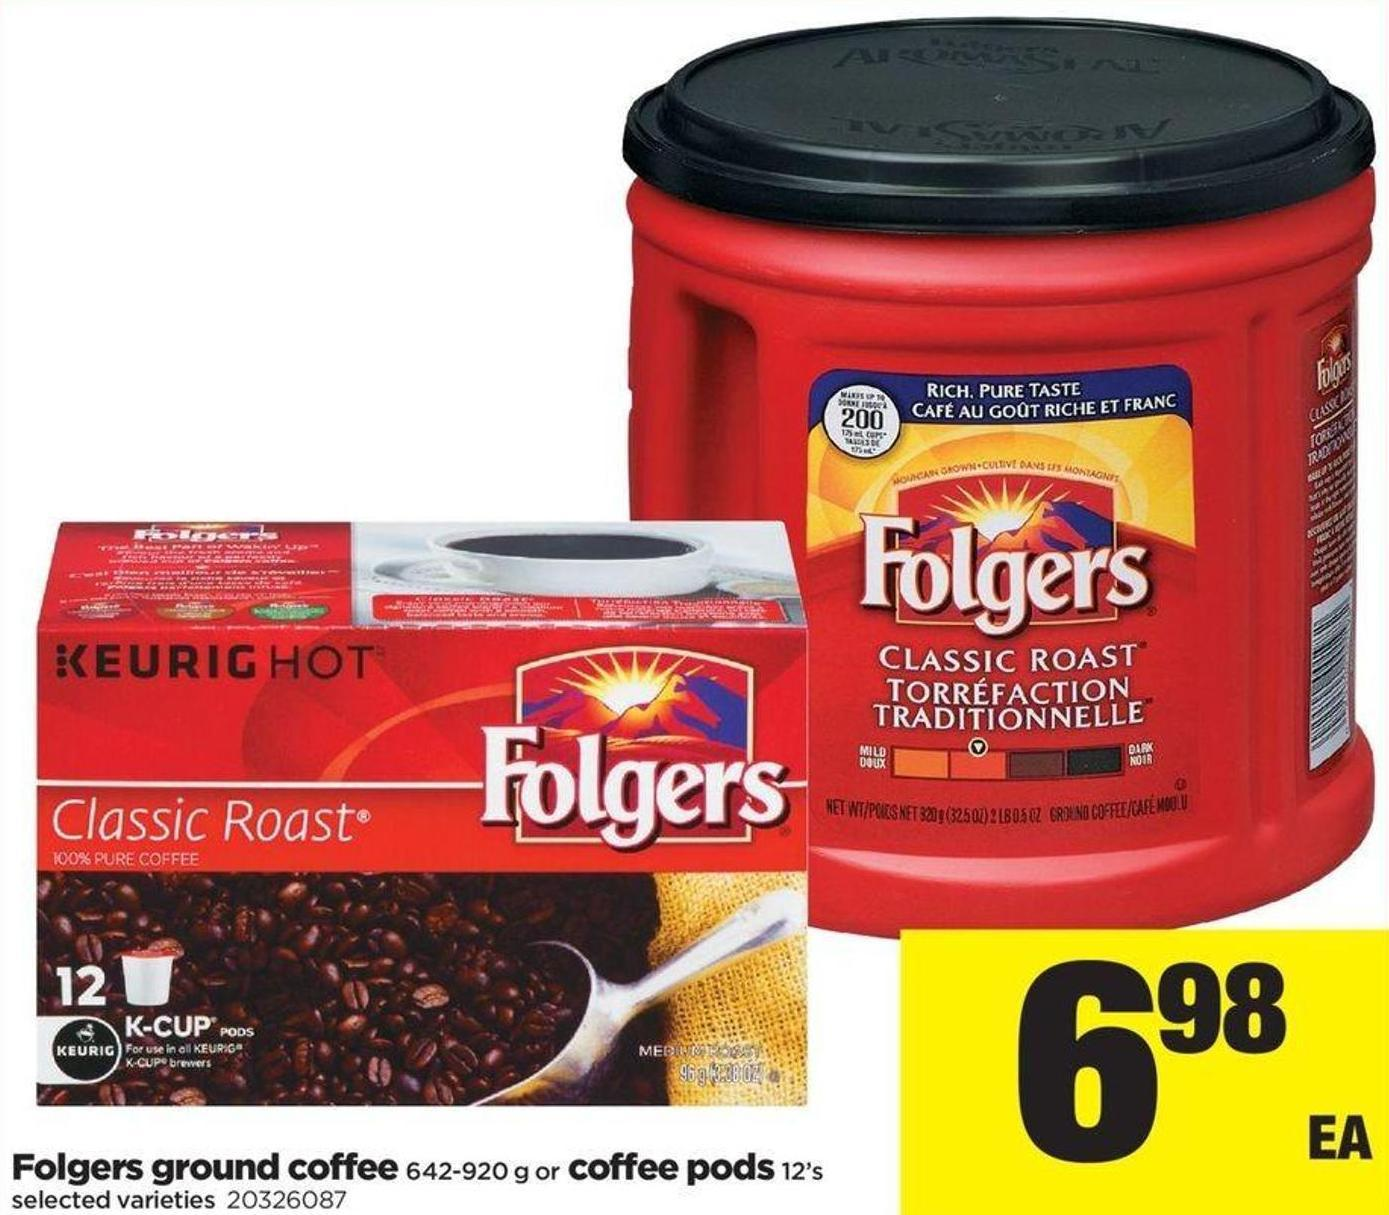 Folgers Ground Coffee - 642-920 G Or Coffee PODS - 12's